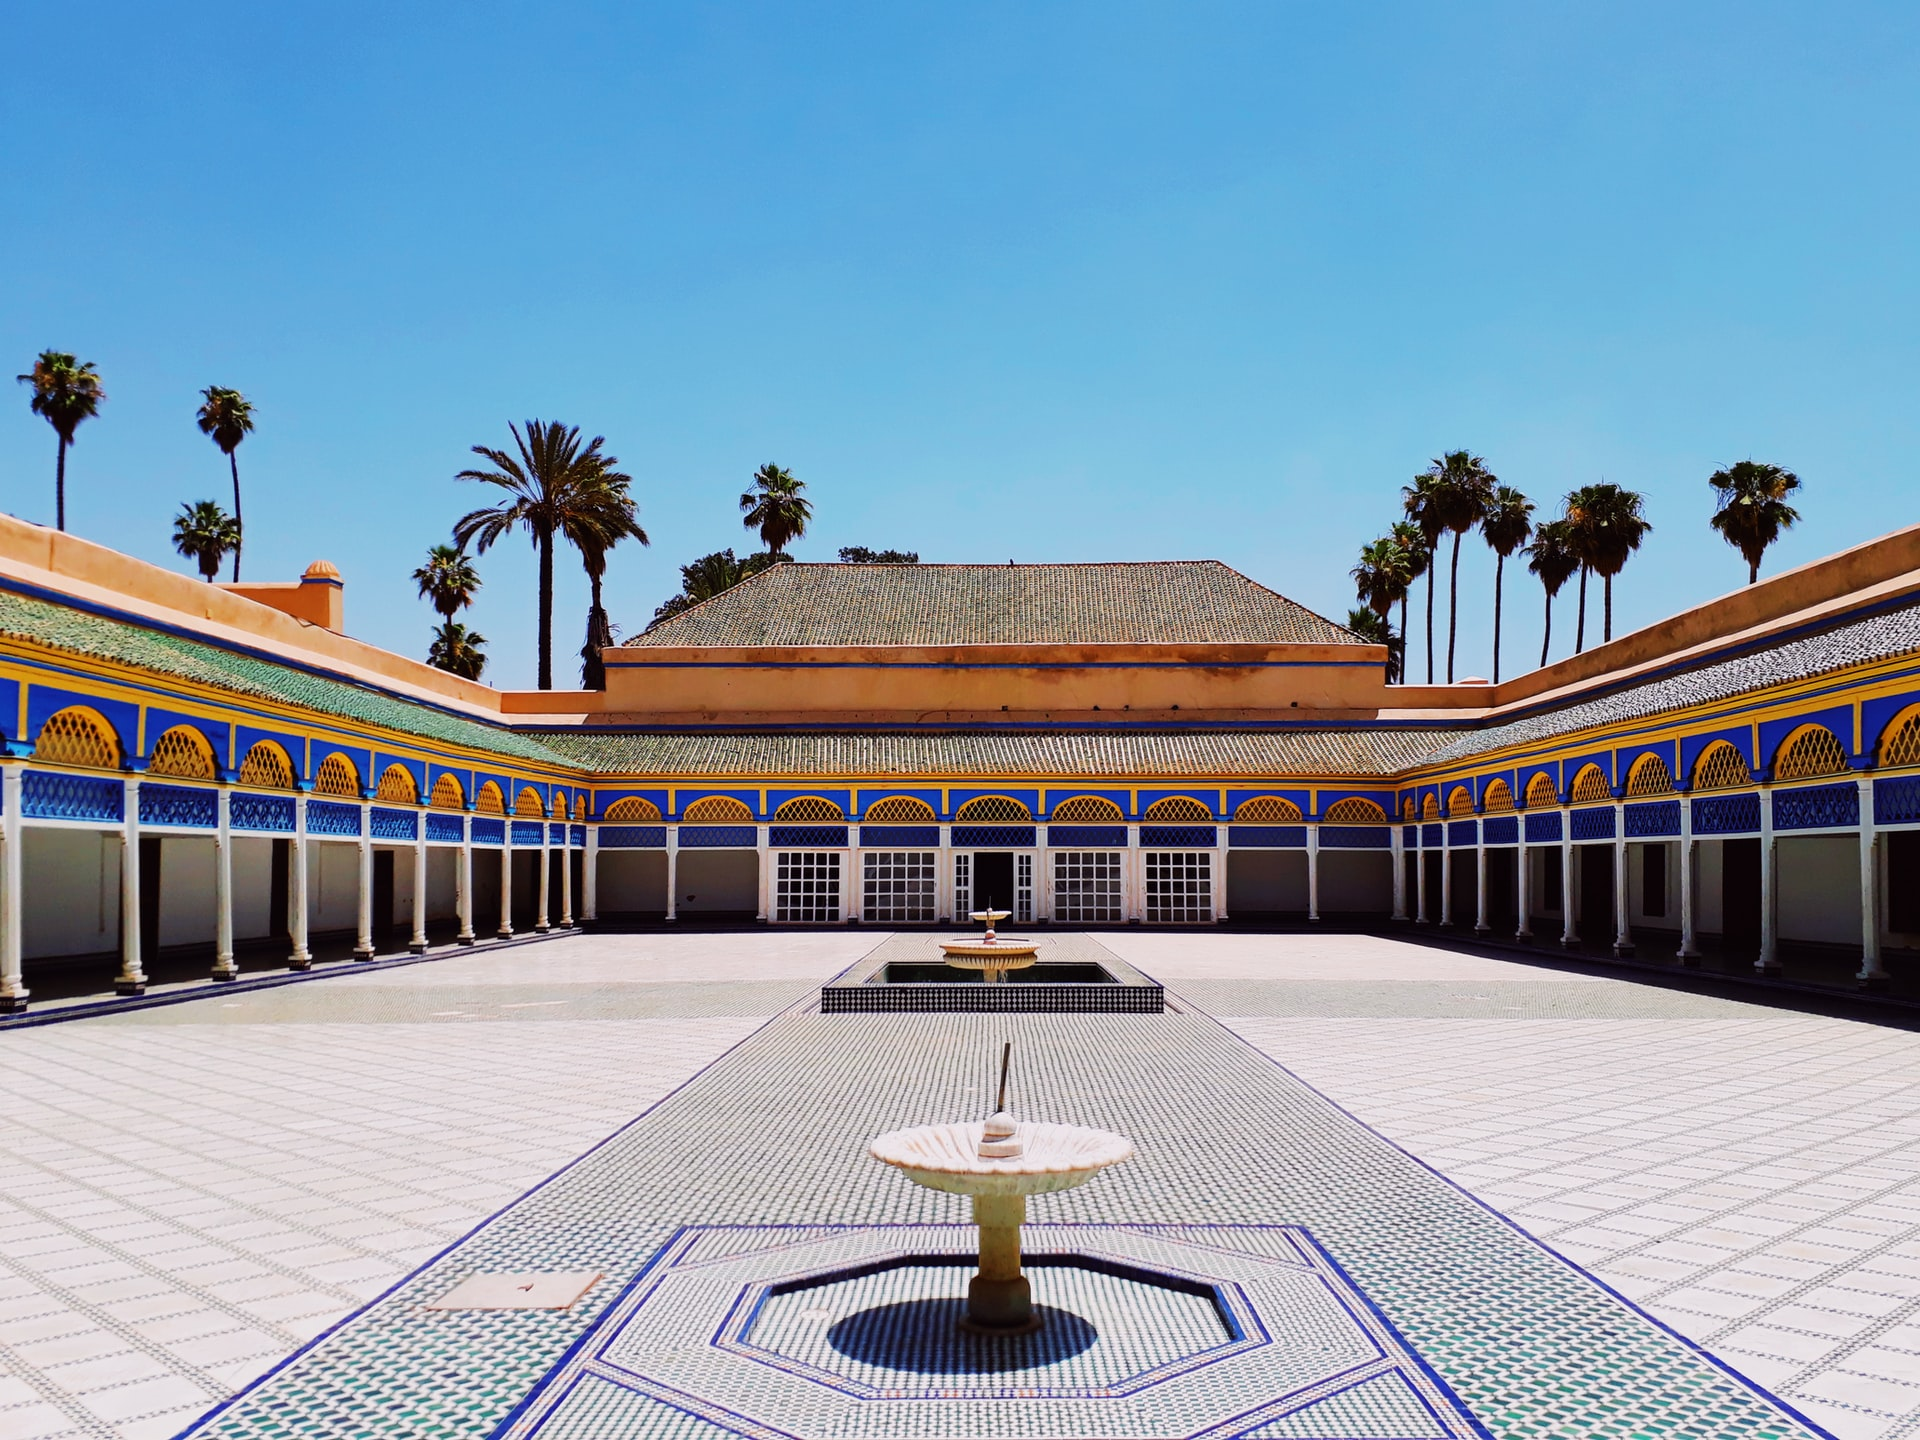 Morocco 1 week itinerary from Tangier to Marrakech